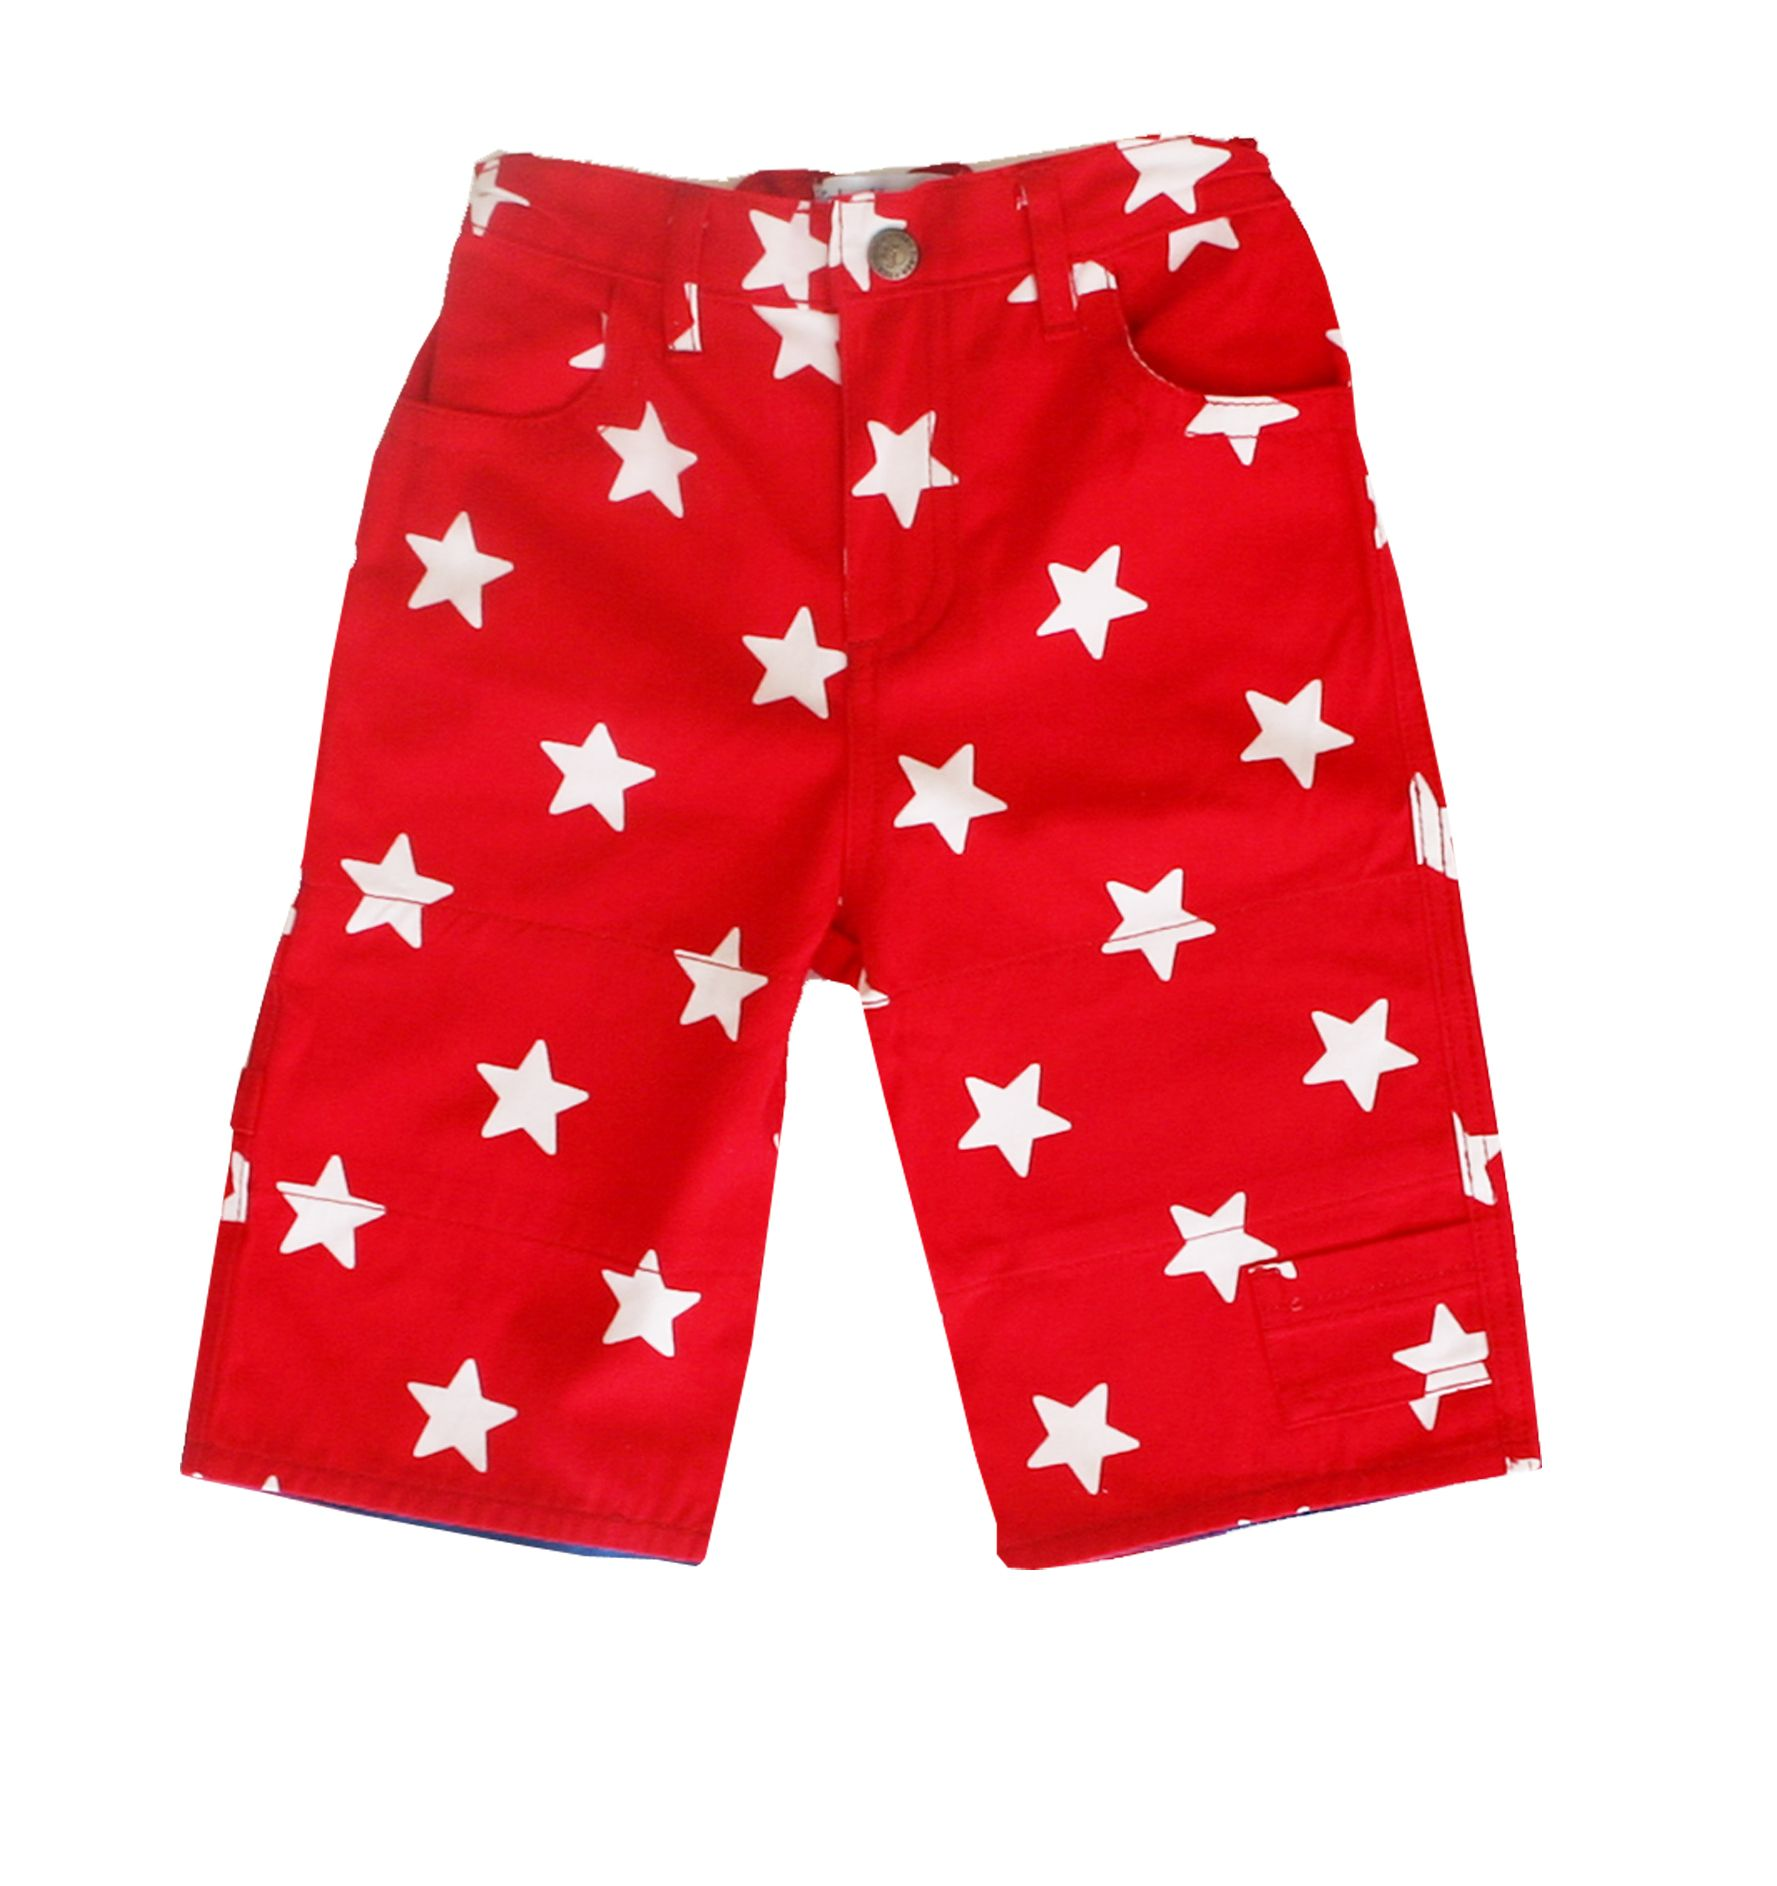 Toby Tiger Boys red star 3/4 length board shorts, Red